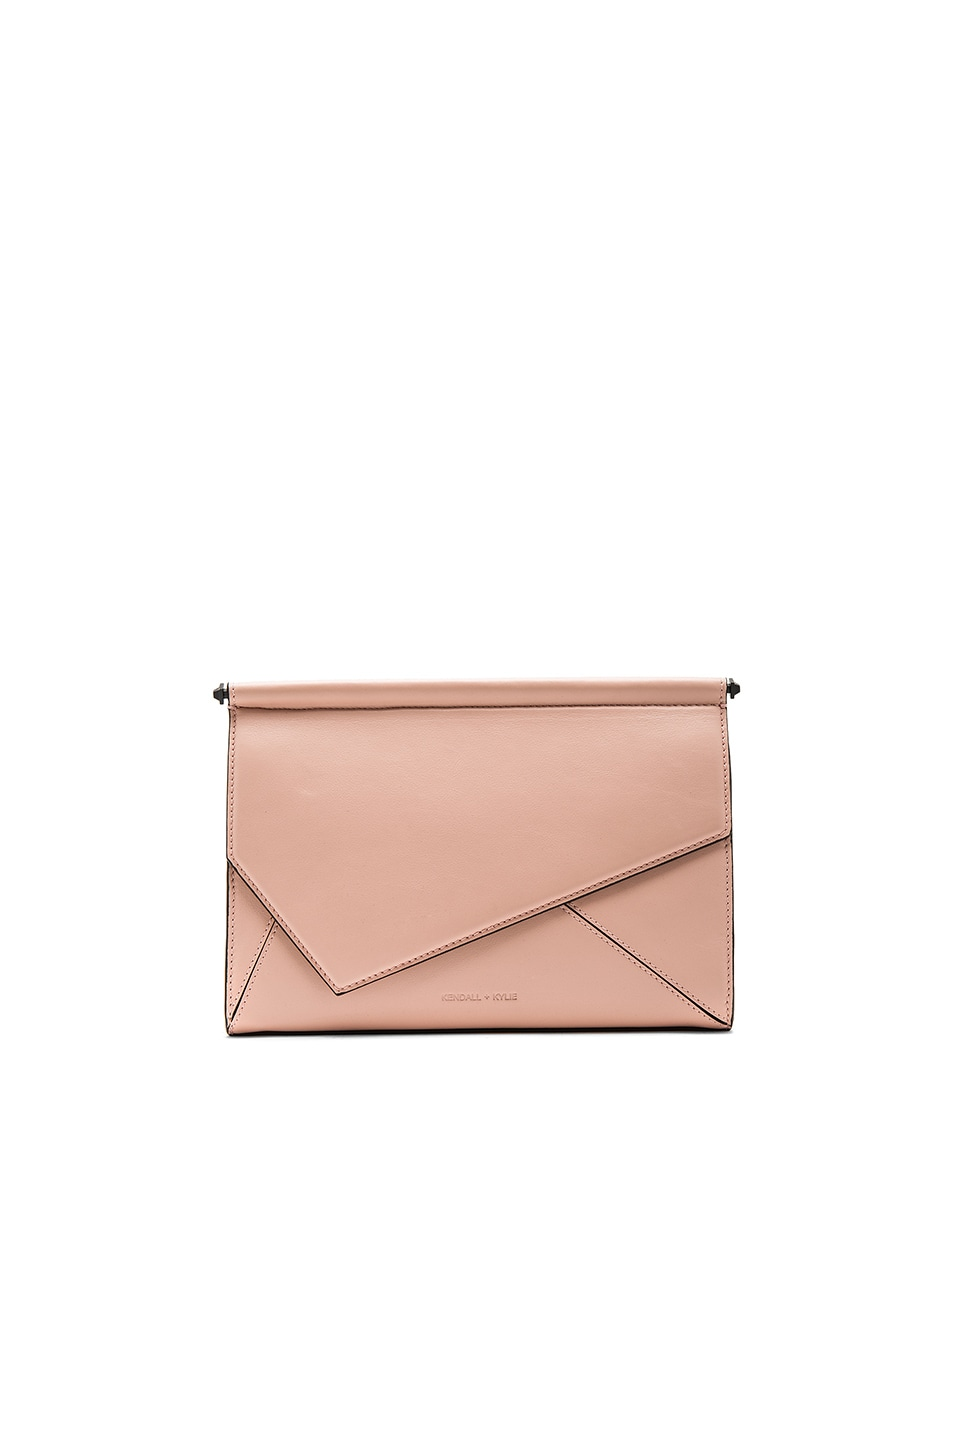 KENDALL + KYLIE Ginza Clutch in Rose Cloud